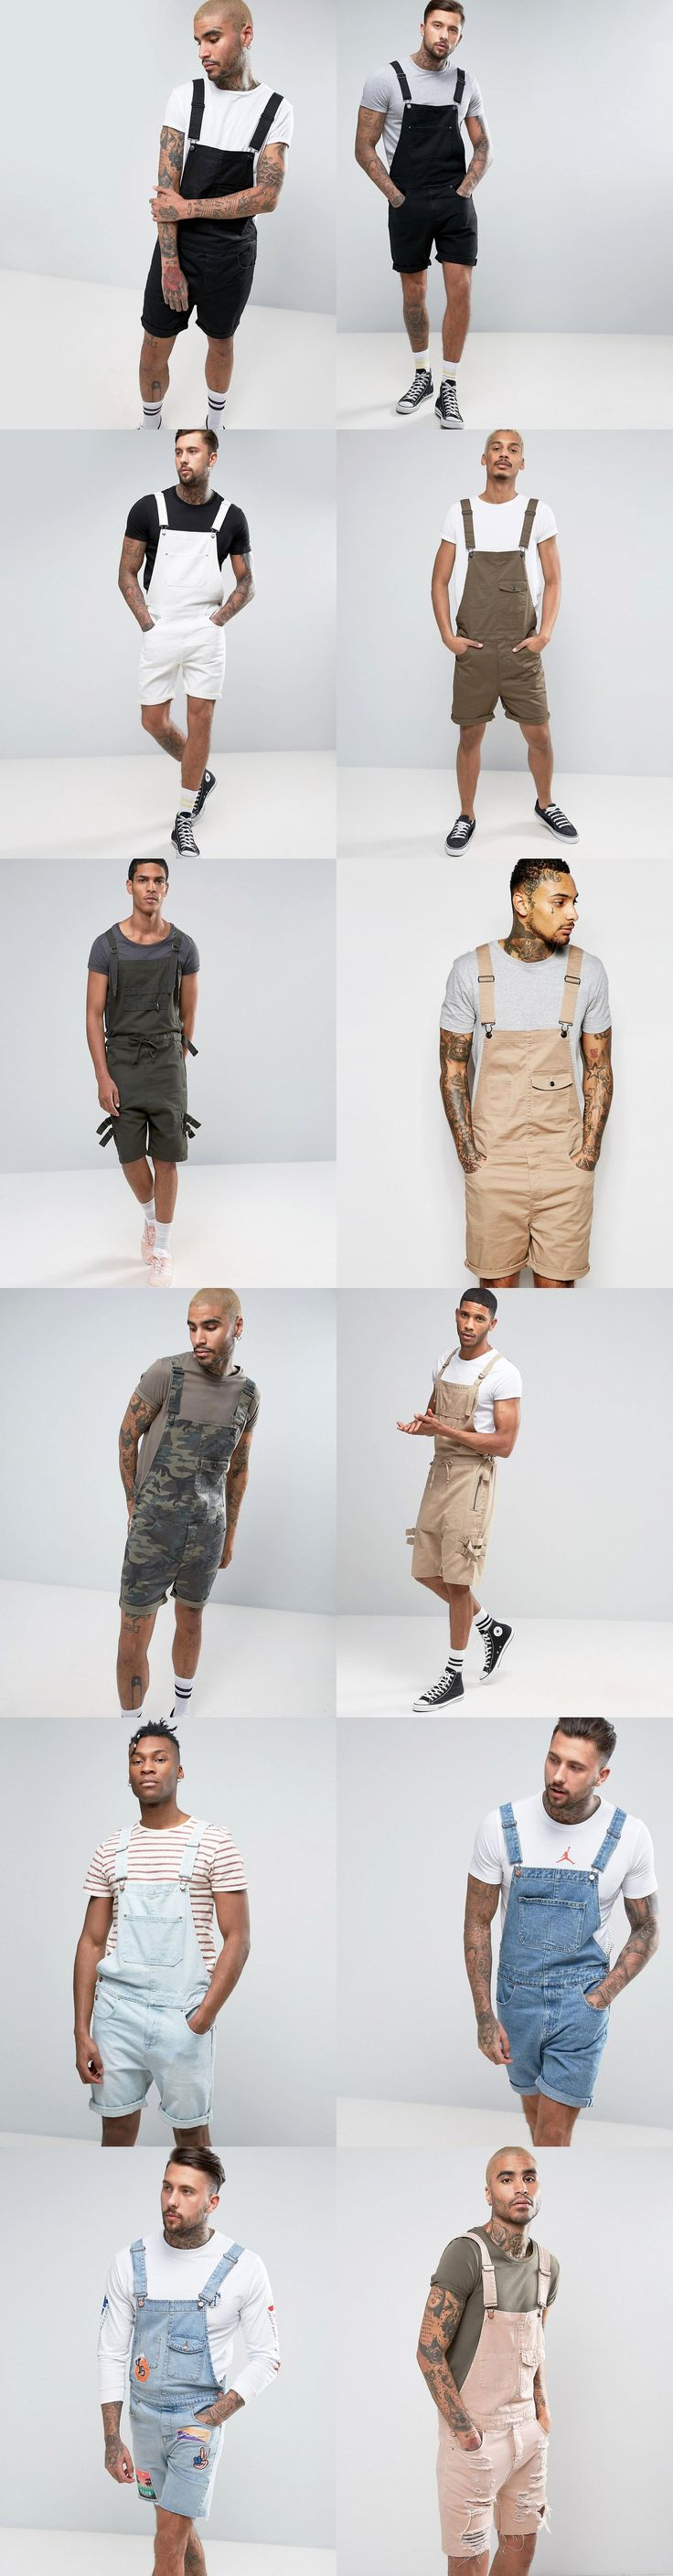 12 Trendy Short Overalls - ASOS menswear shuts down the new season with the latest trends and the coolest products, designed in London and sold across the world. Update your go-to garms with the new shapes and fits from ASOS design team, from essential tees to on-point outerwear, and jeans from skinny to straight and beyond.